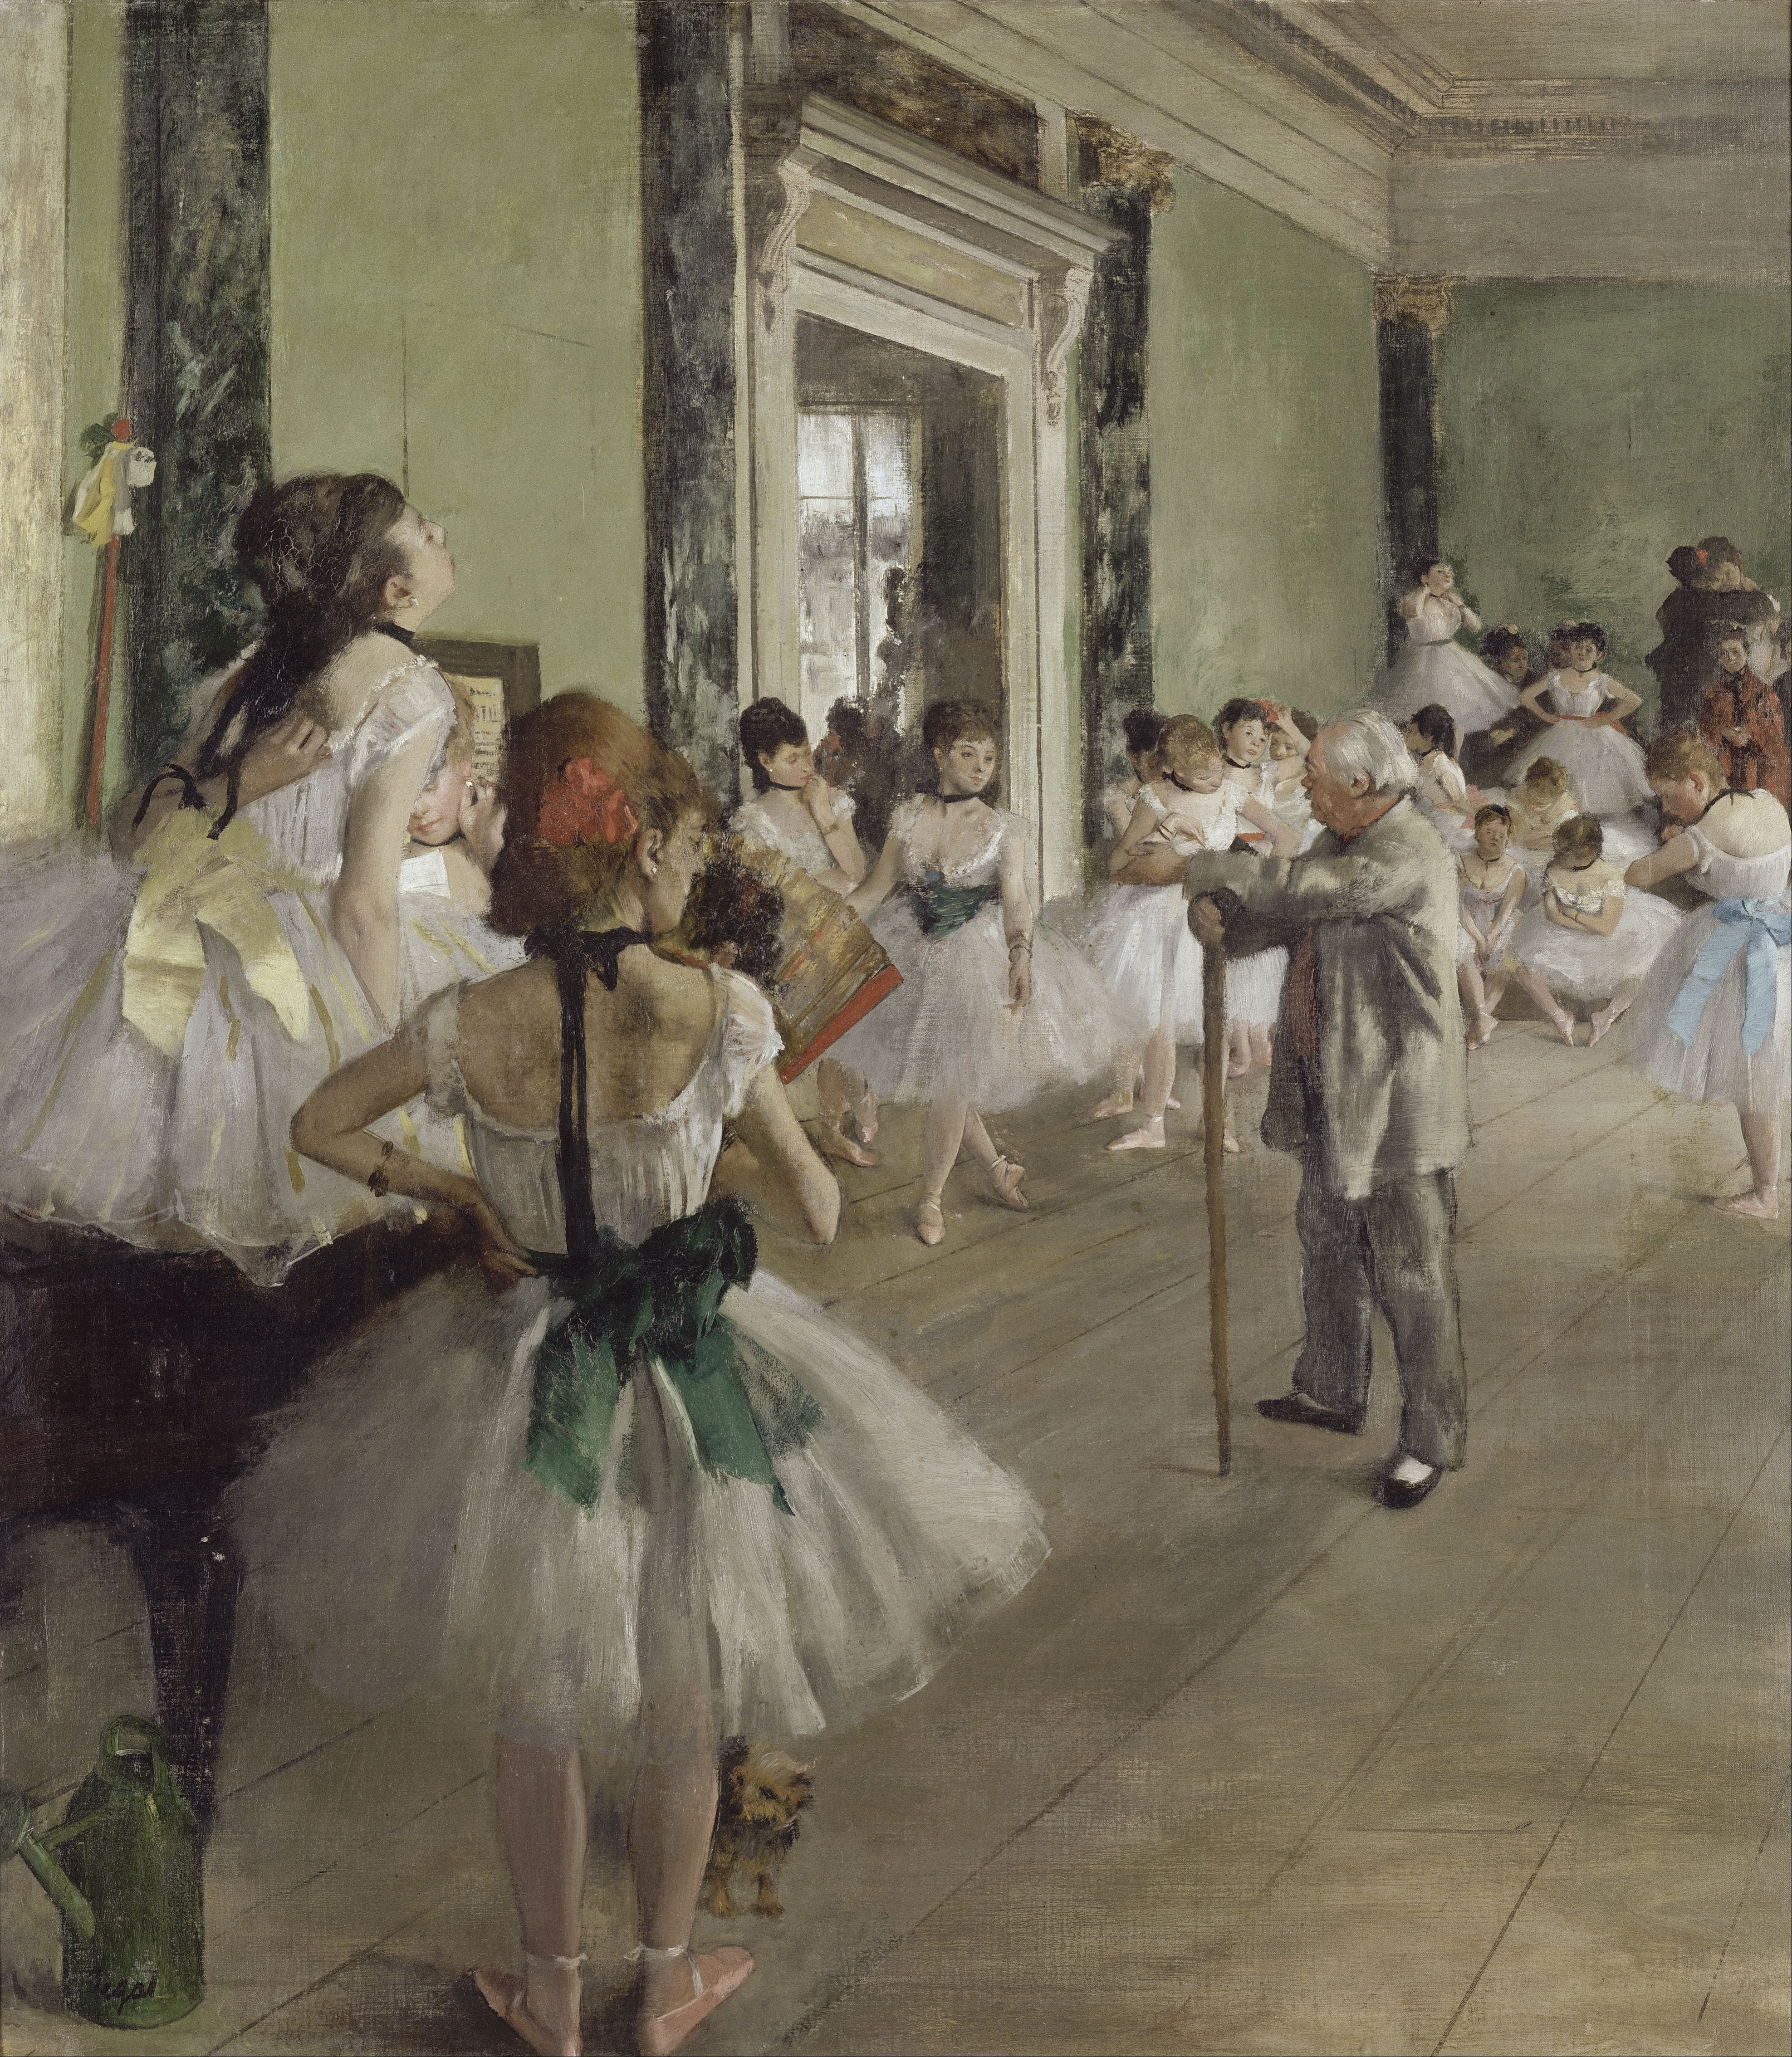 Patron of the Arts A Figure Essential to Every Page of Art's History - Edgar Degas patron Patron of the Arts: A Figure Essential to Every Page of Art's History Patron of the Arts A Figure Essential to Every Page of Arts History Edgar Degas